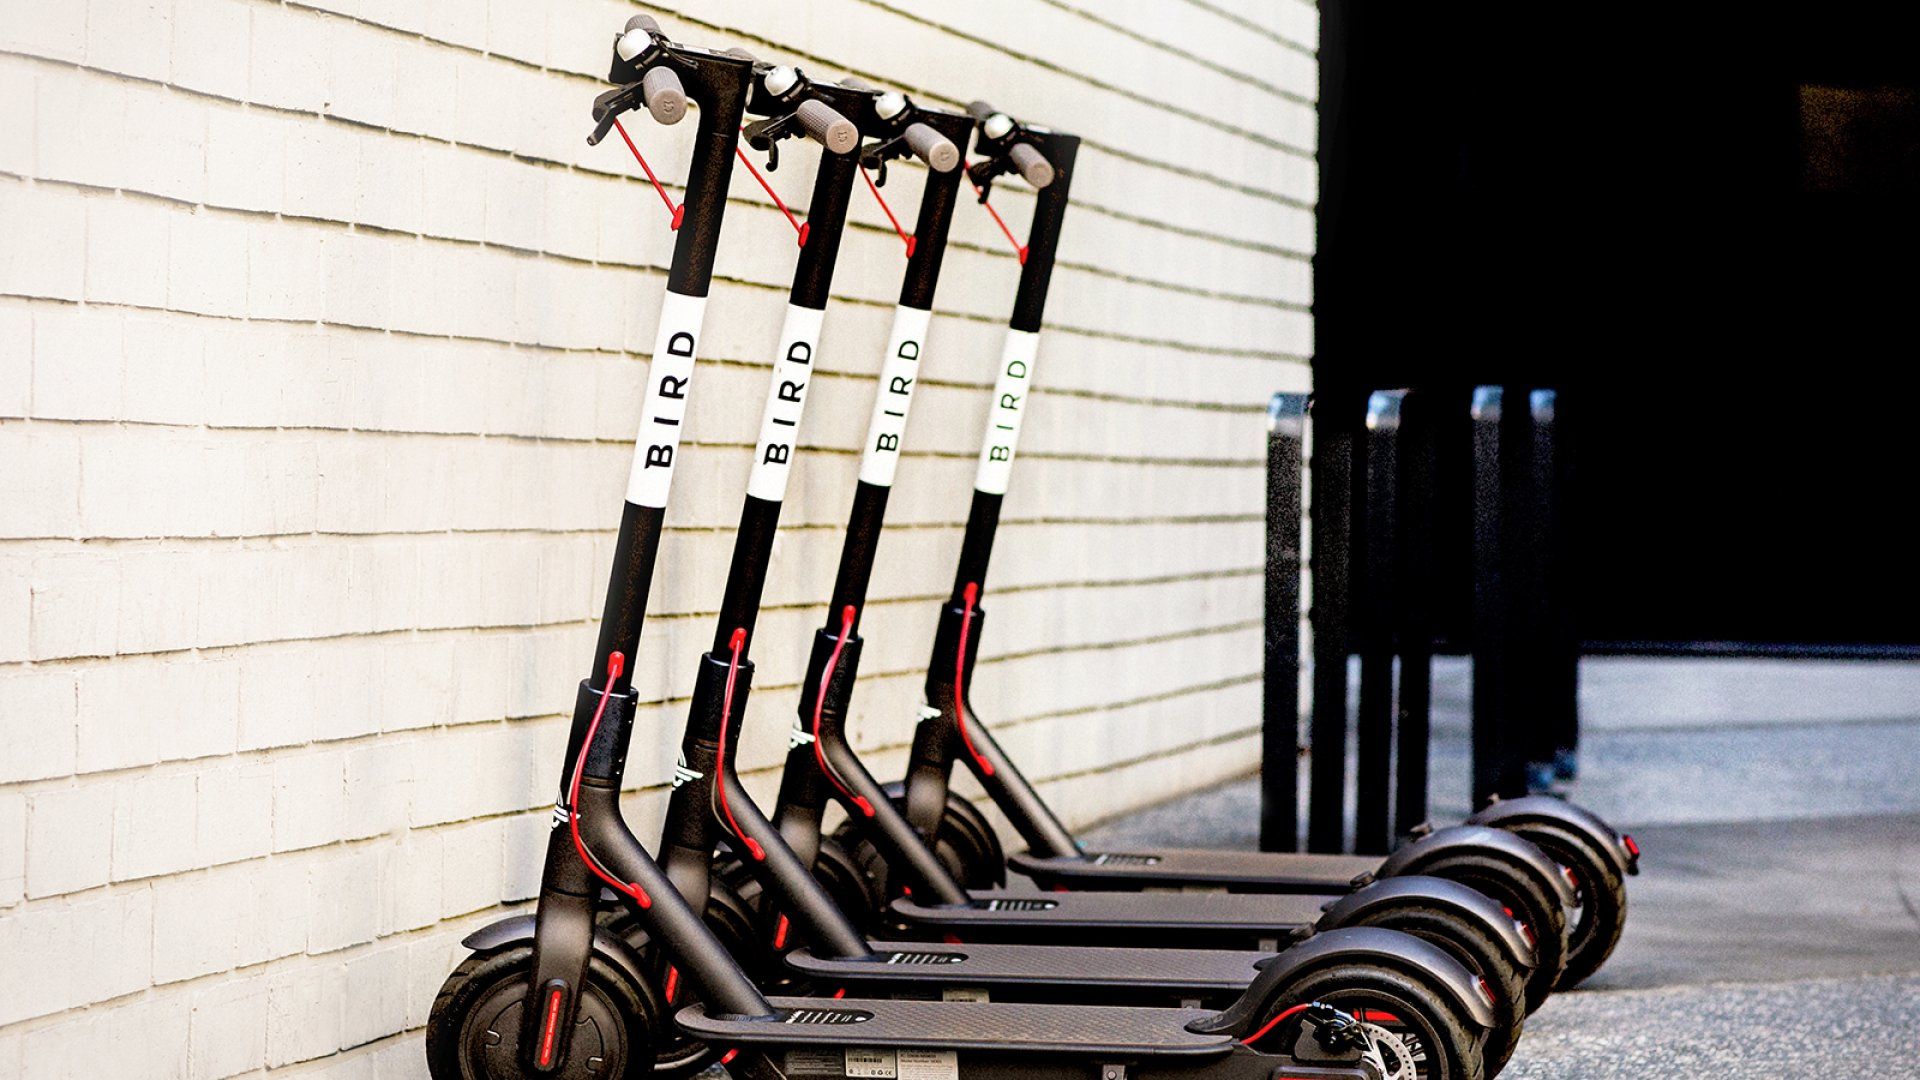 After 'Scooter-Geddon' in San Francisco, Electric Scooter Startups Plan Aggressive Expansion